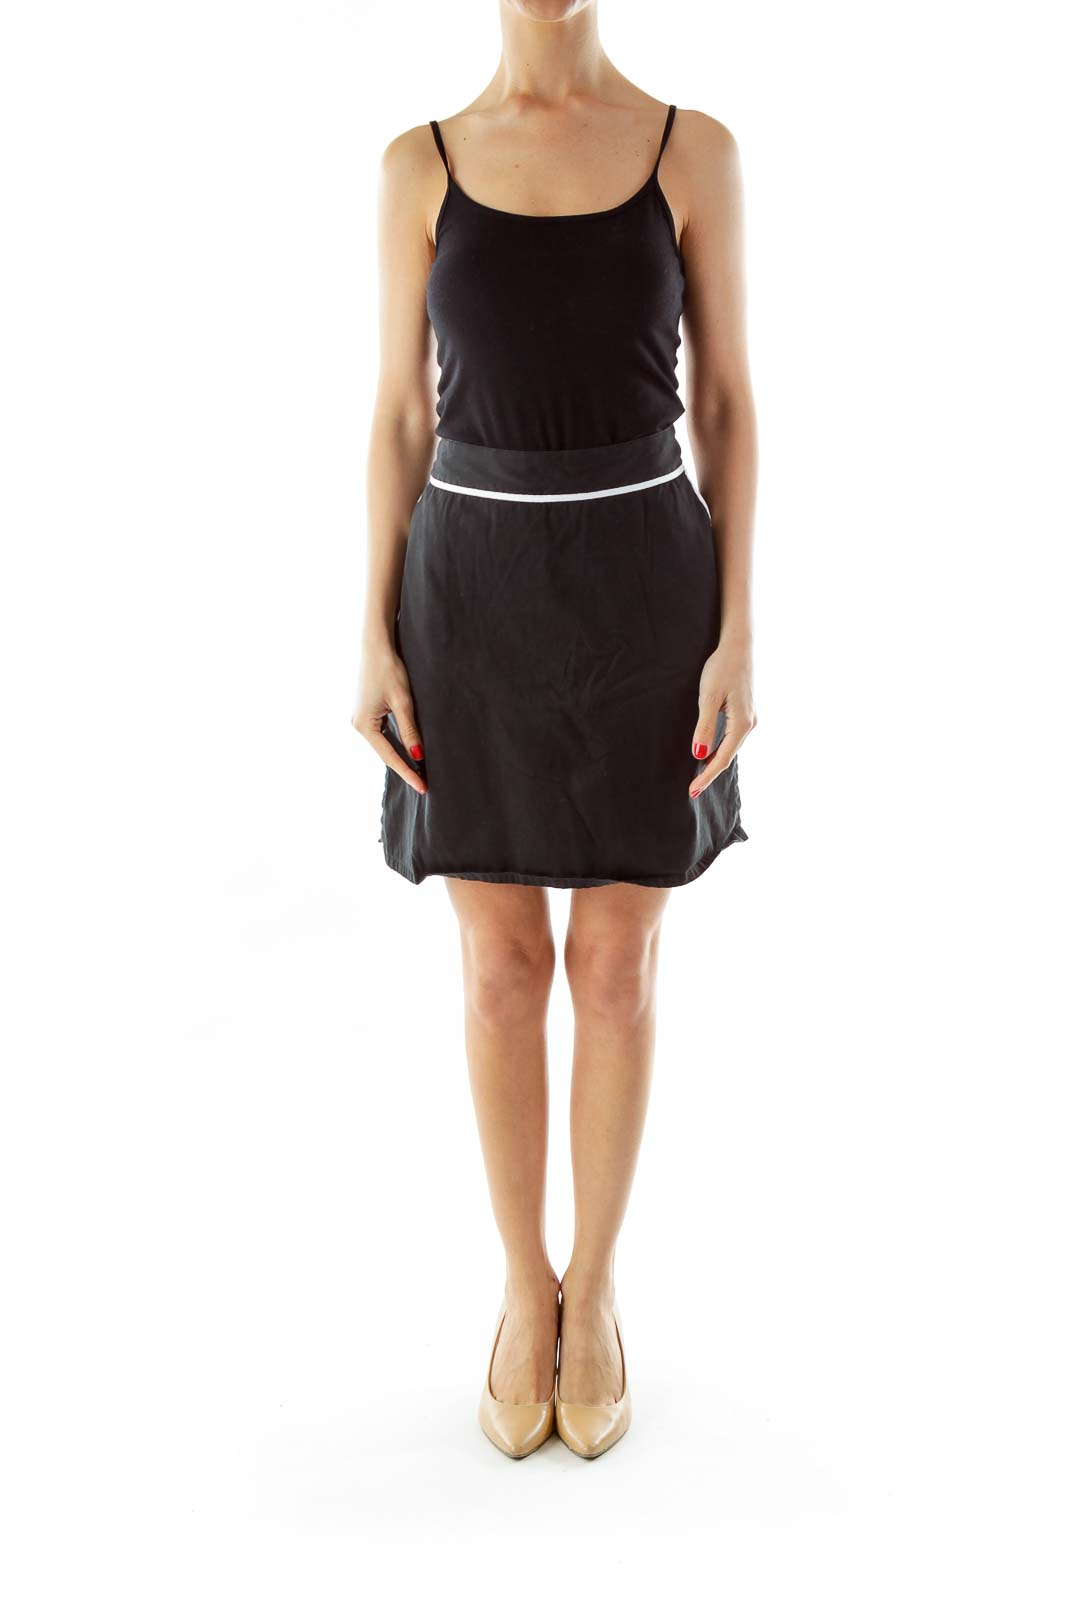 Black Pocketed Skirt w/ White Lines